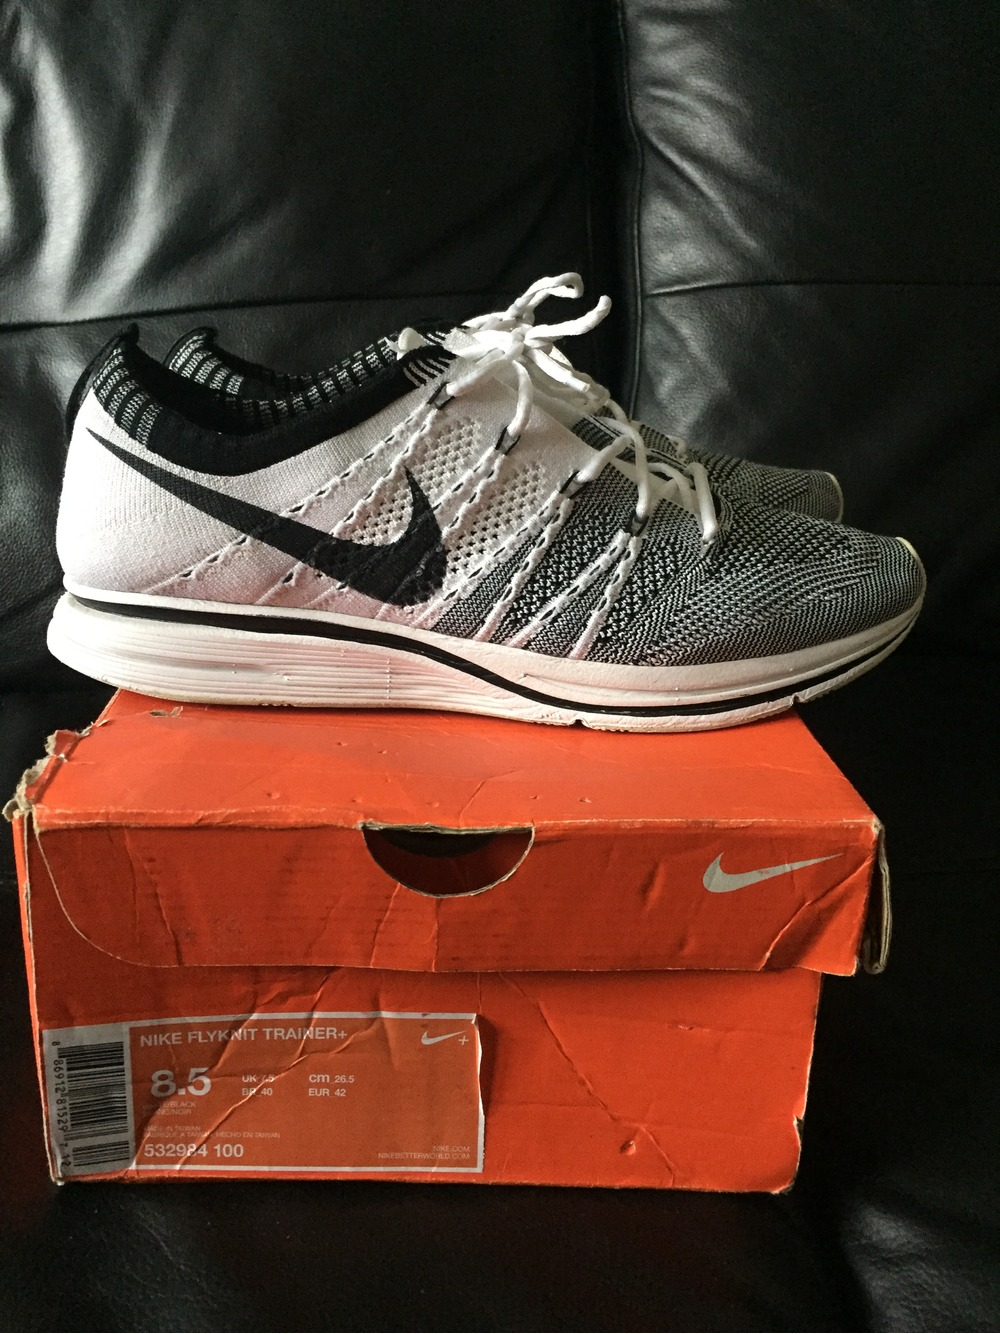 4d87be1313bc promo code nike flyknit trainer yeezy nike b1189 d776d